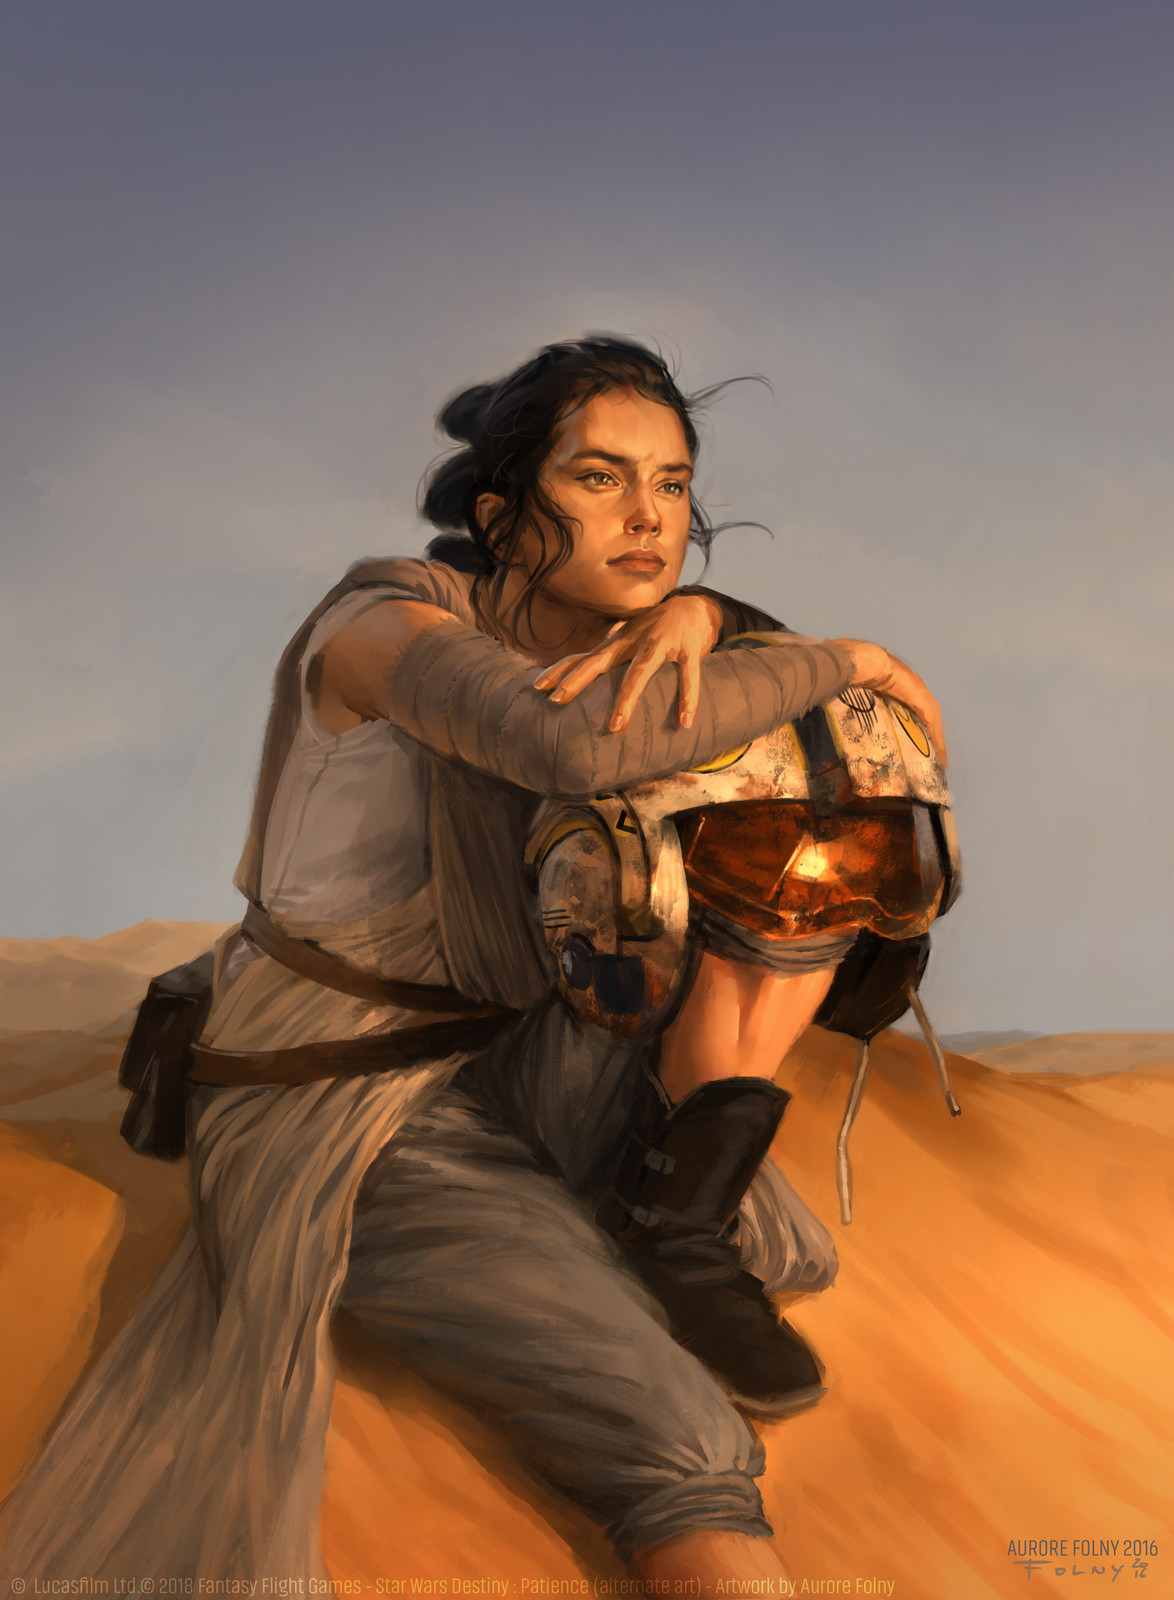 Star Wars Destiny : Patience alternate art